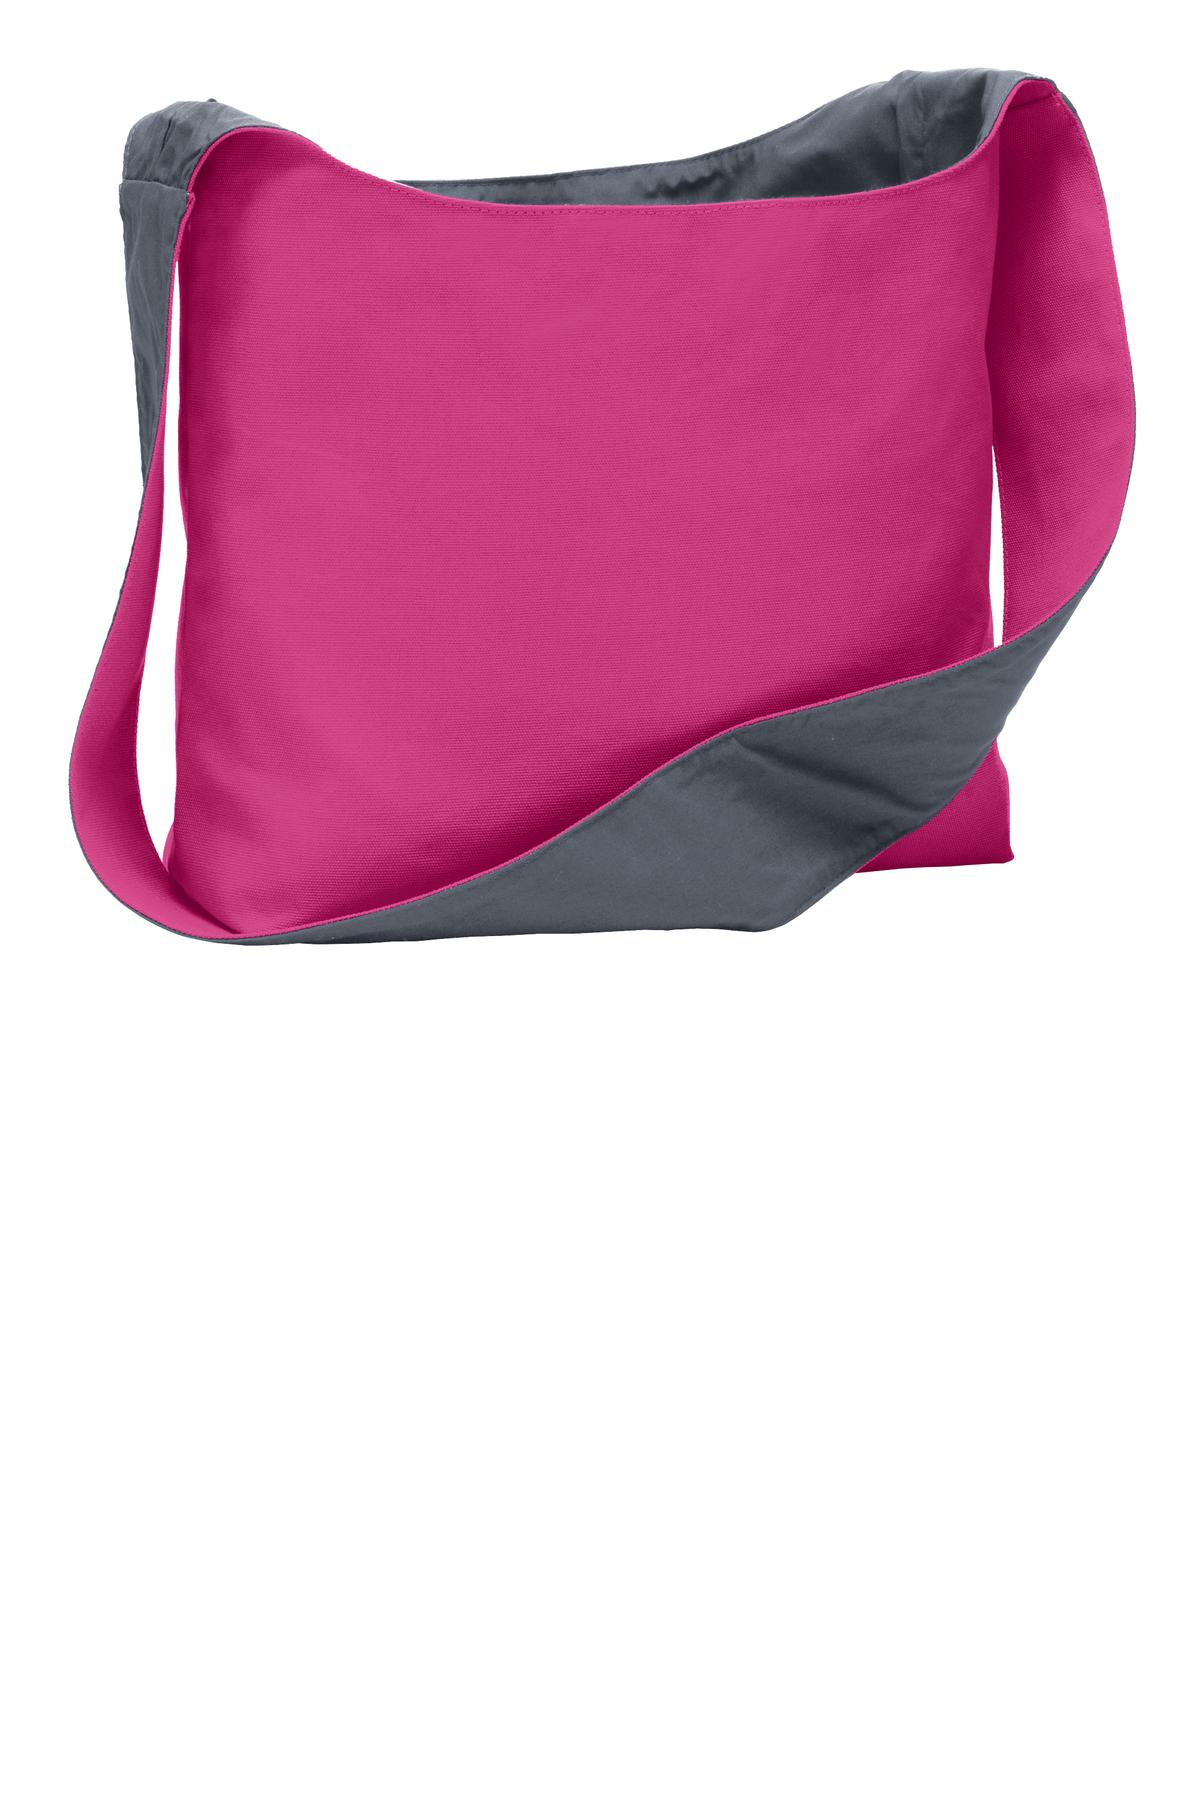 Port Authority ®  Cotton Canvas Sling Bag. BG405 - Tropical Pink/ Charcoal